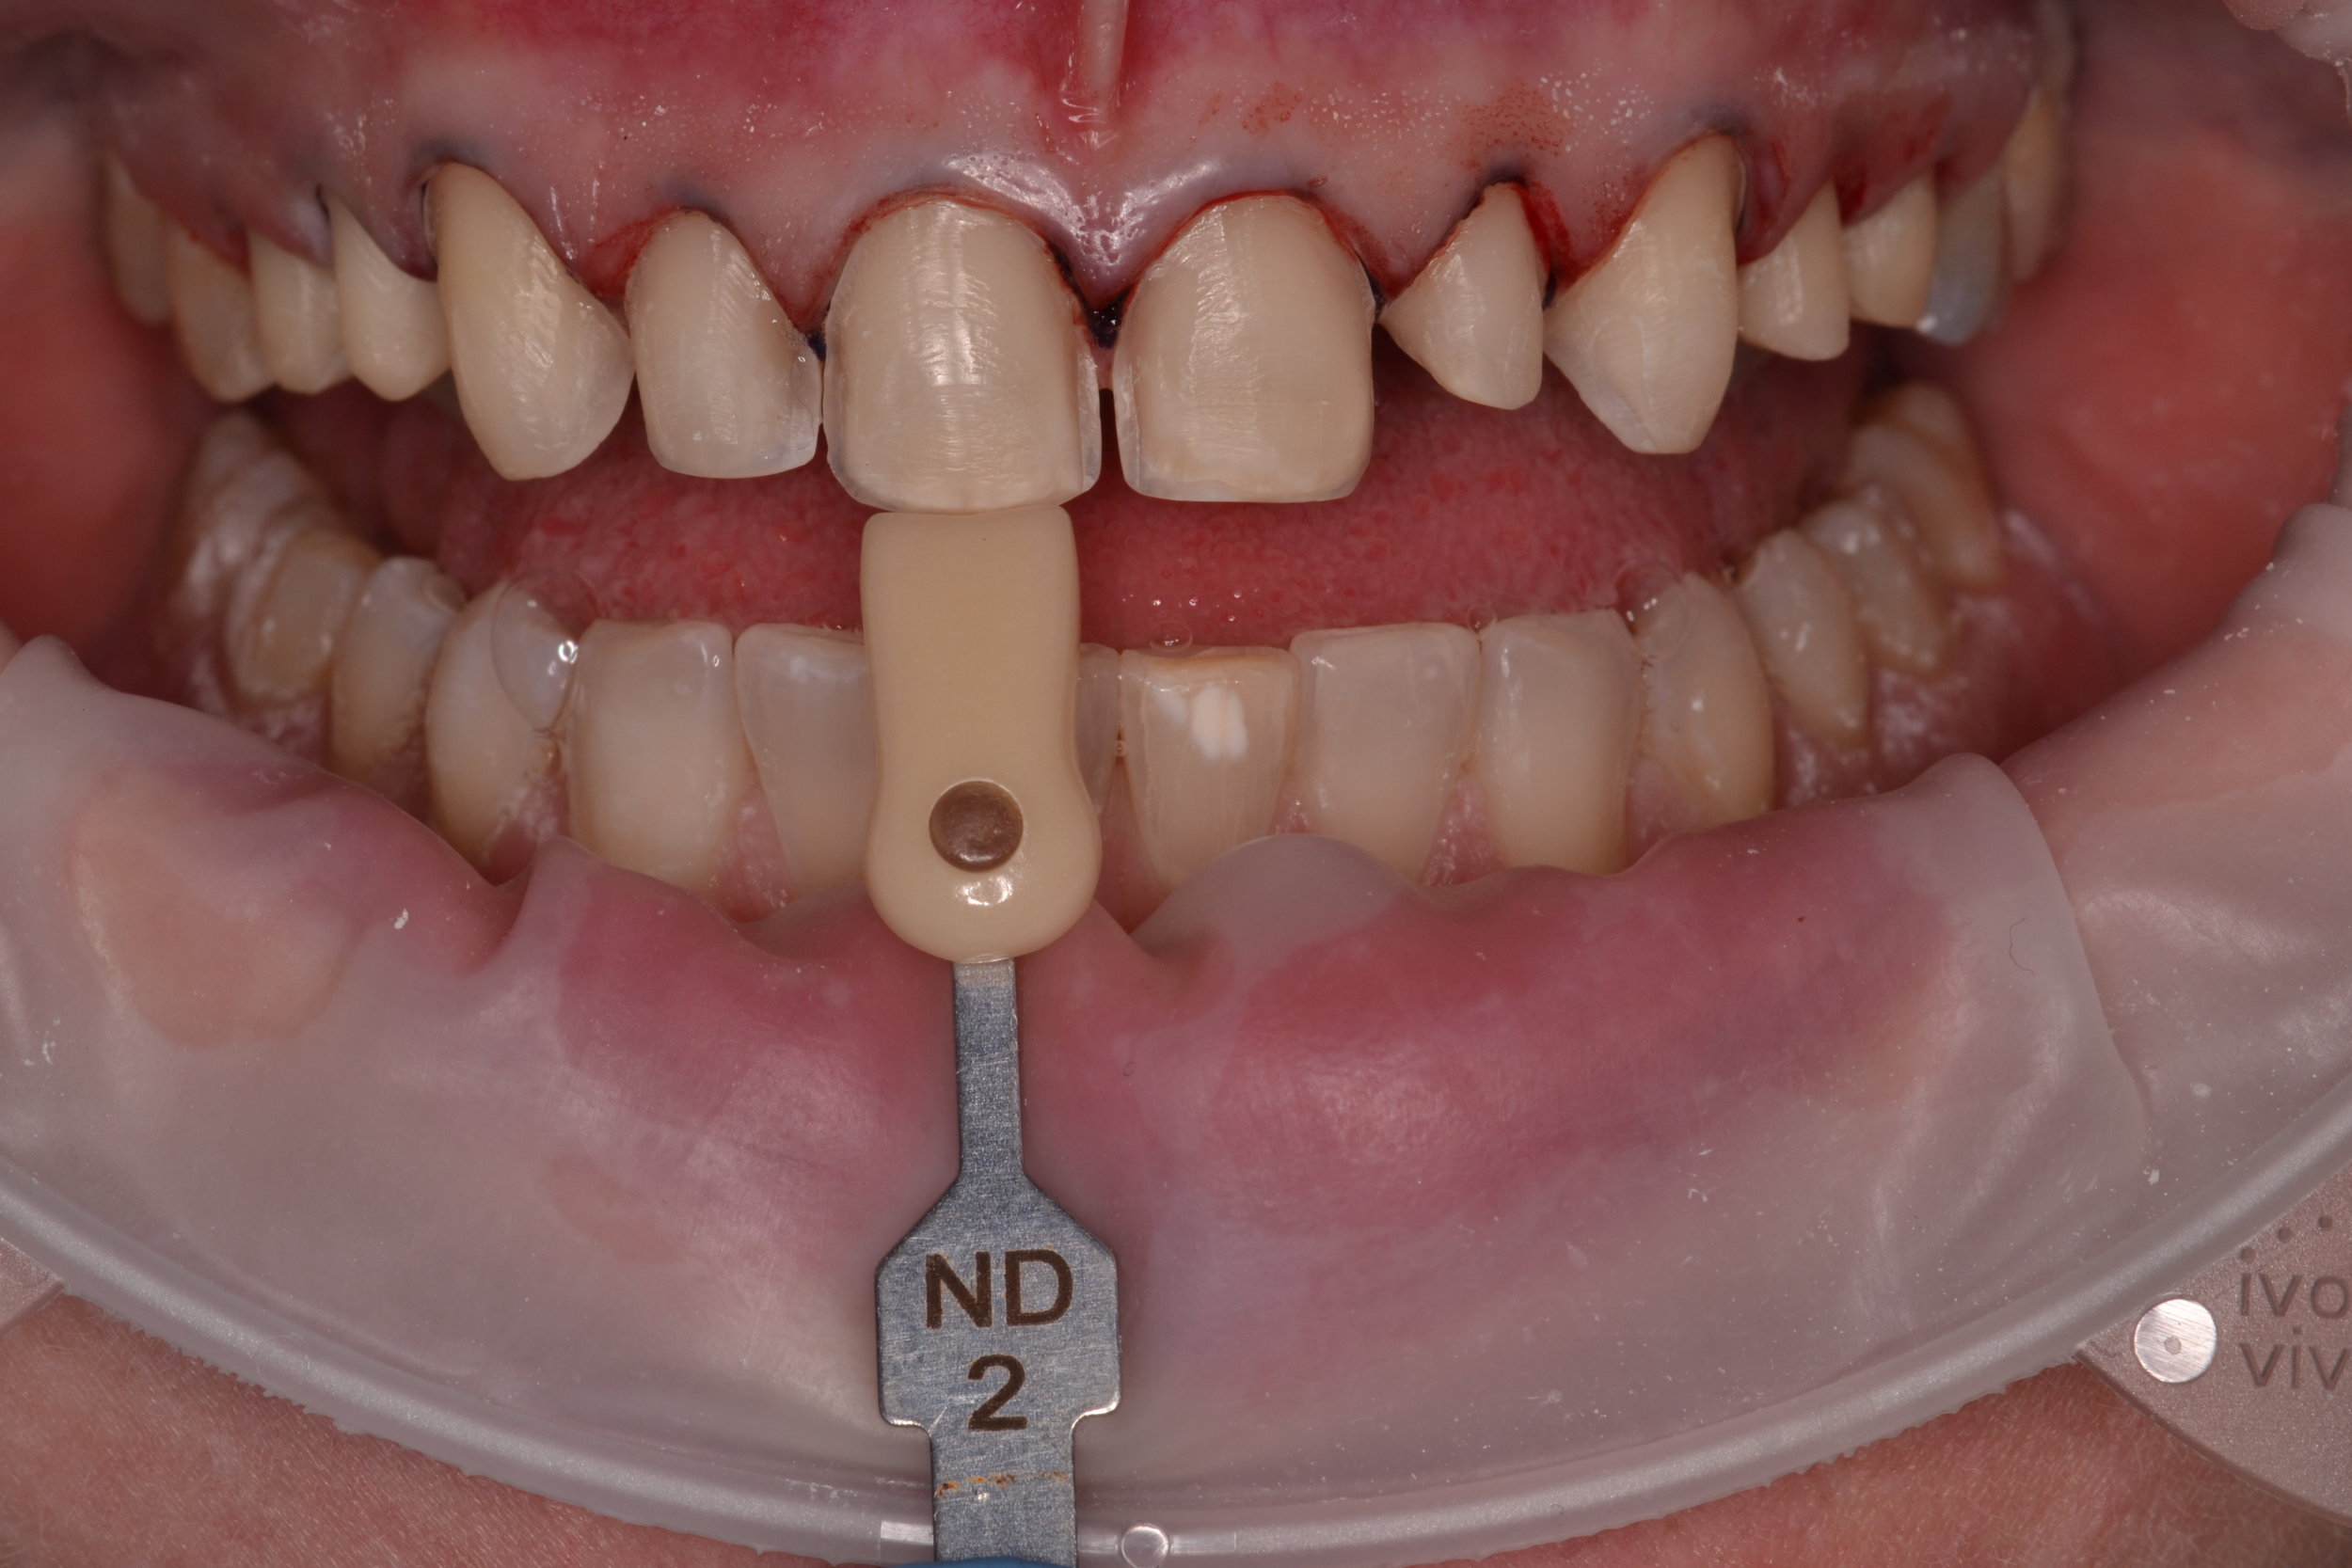 Figure 8; Die shade tab photo (photos of ND1 and ND2 were both provided to the dental laboratory)